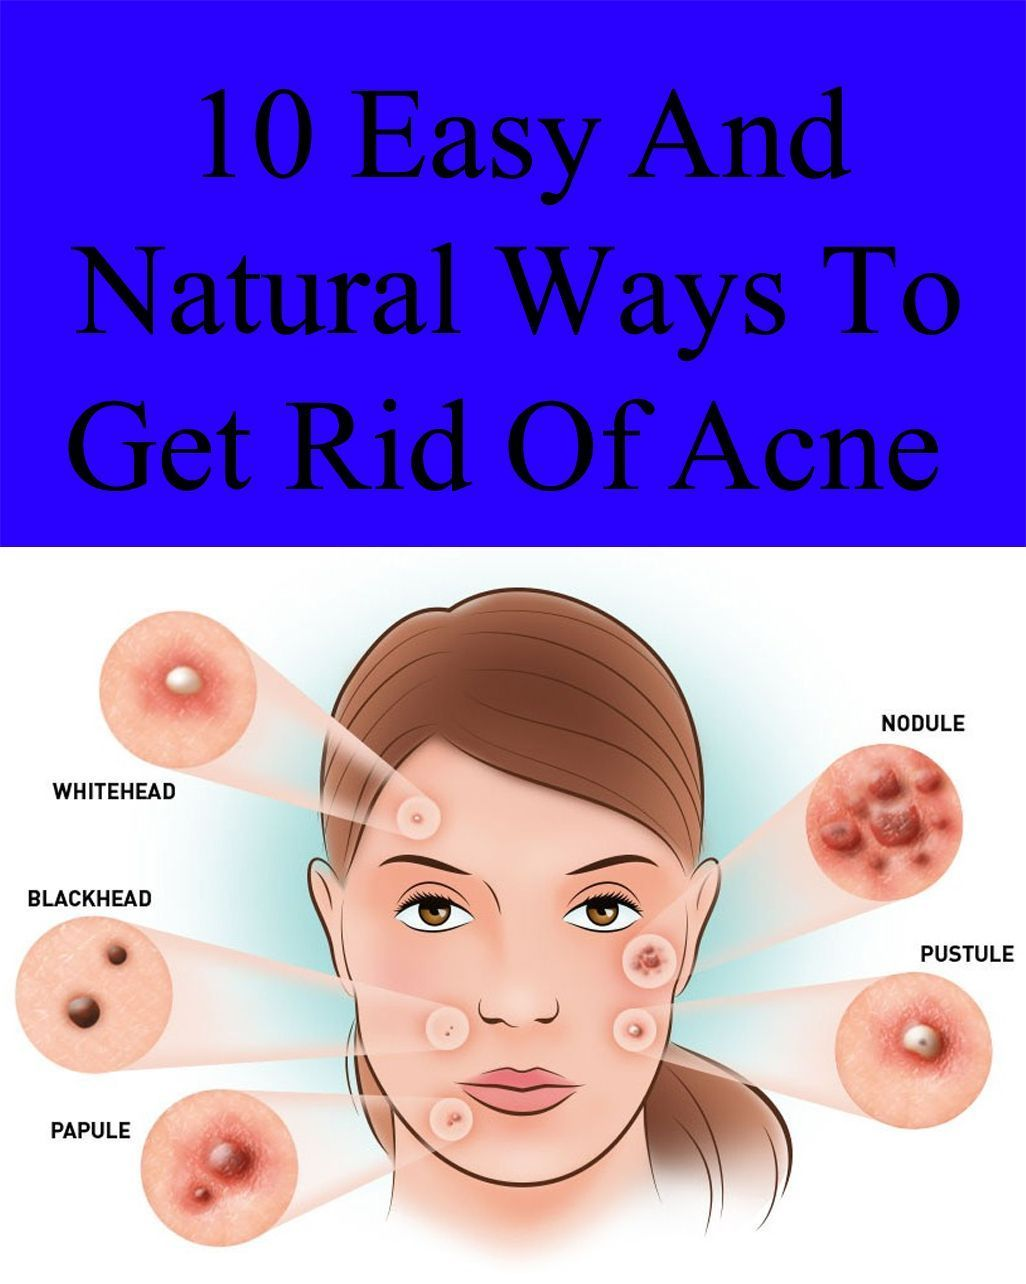 10 Easy and Natural Ways to Get Rid of Acne How to get